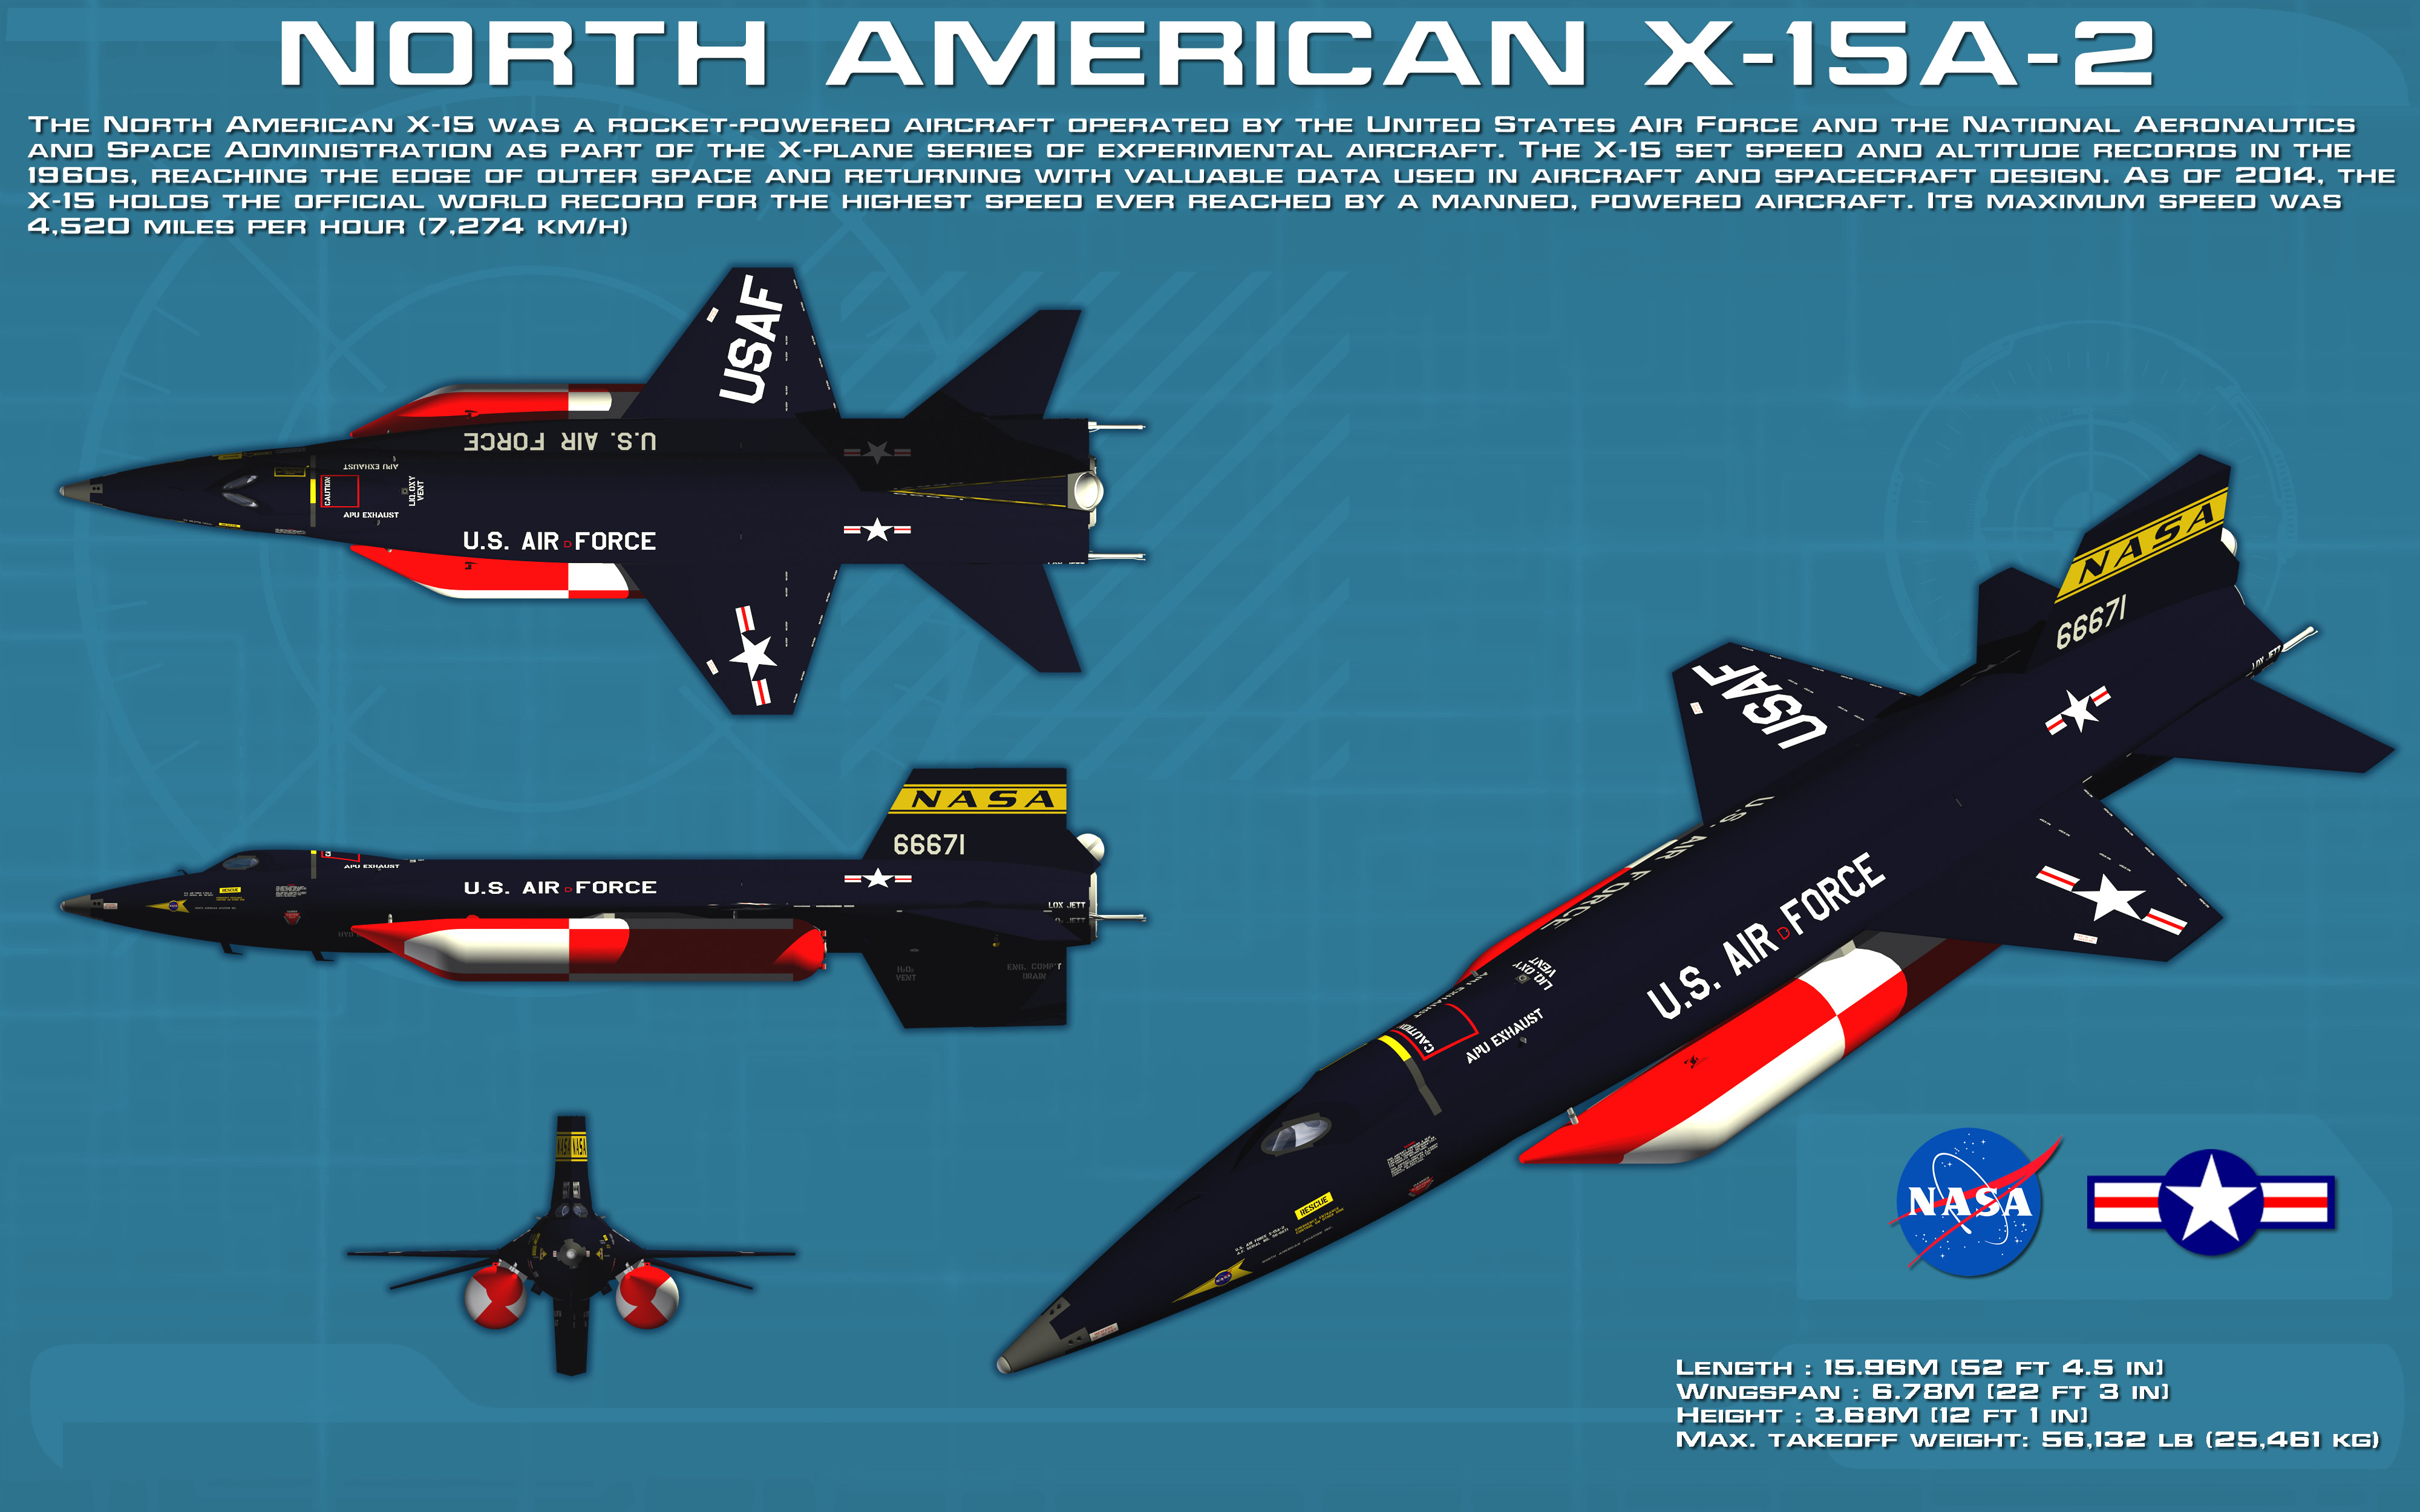 North American X-15A-2 ortho [new] by unusualsuspex on DeviantArt